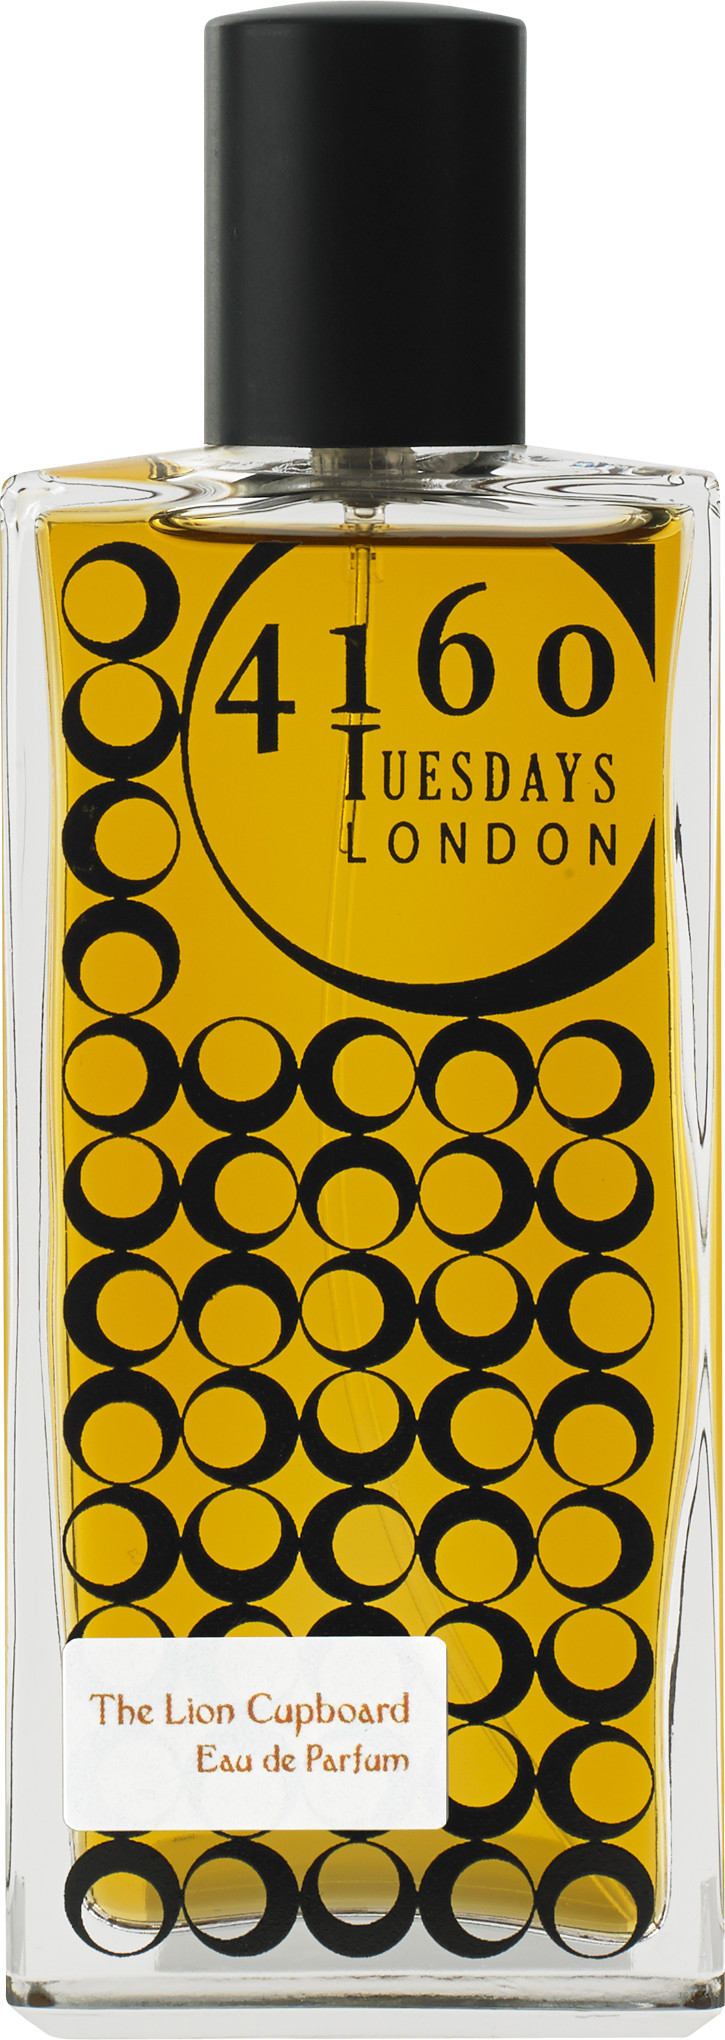 Fragrance 4160 Tuesdays The Lion Cupboard Eau de Parfum